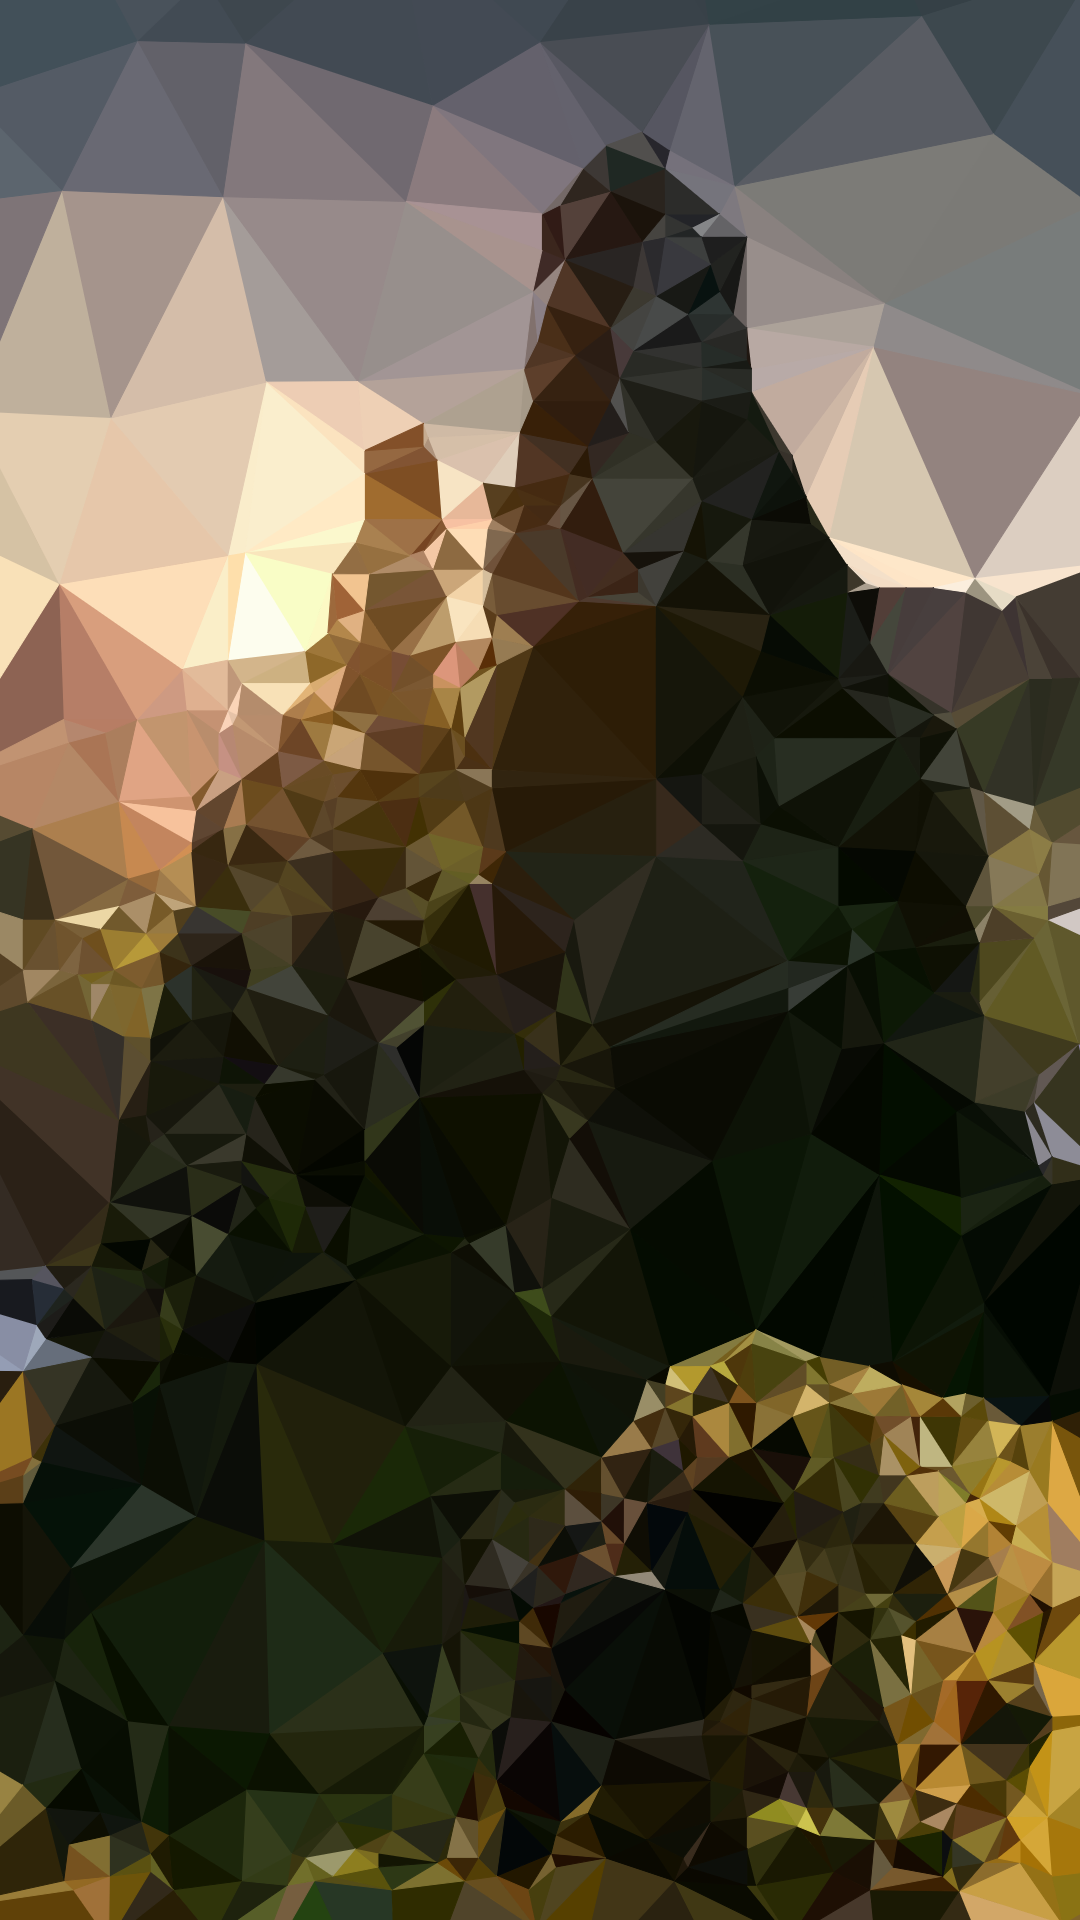 Abstract Nature Polygon Iphone 6 Wallpaper Abstract Nature Abstract